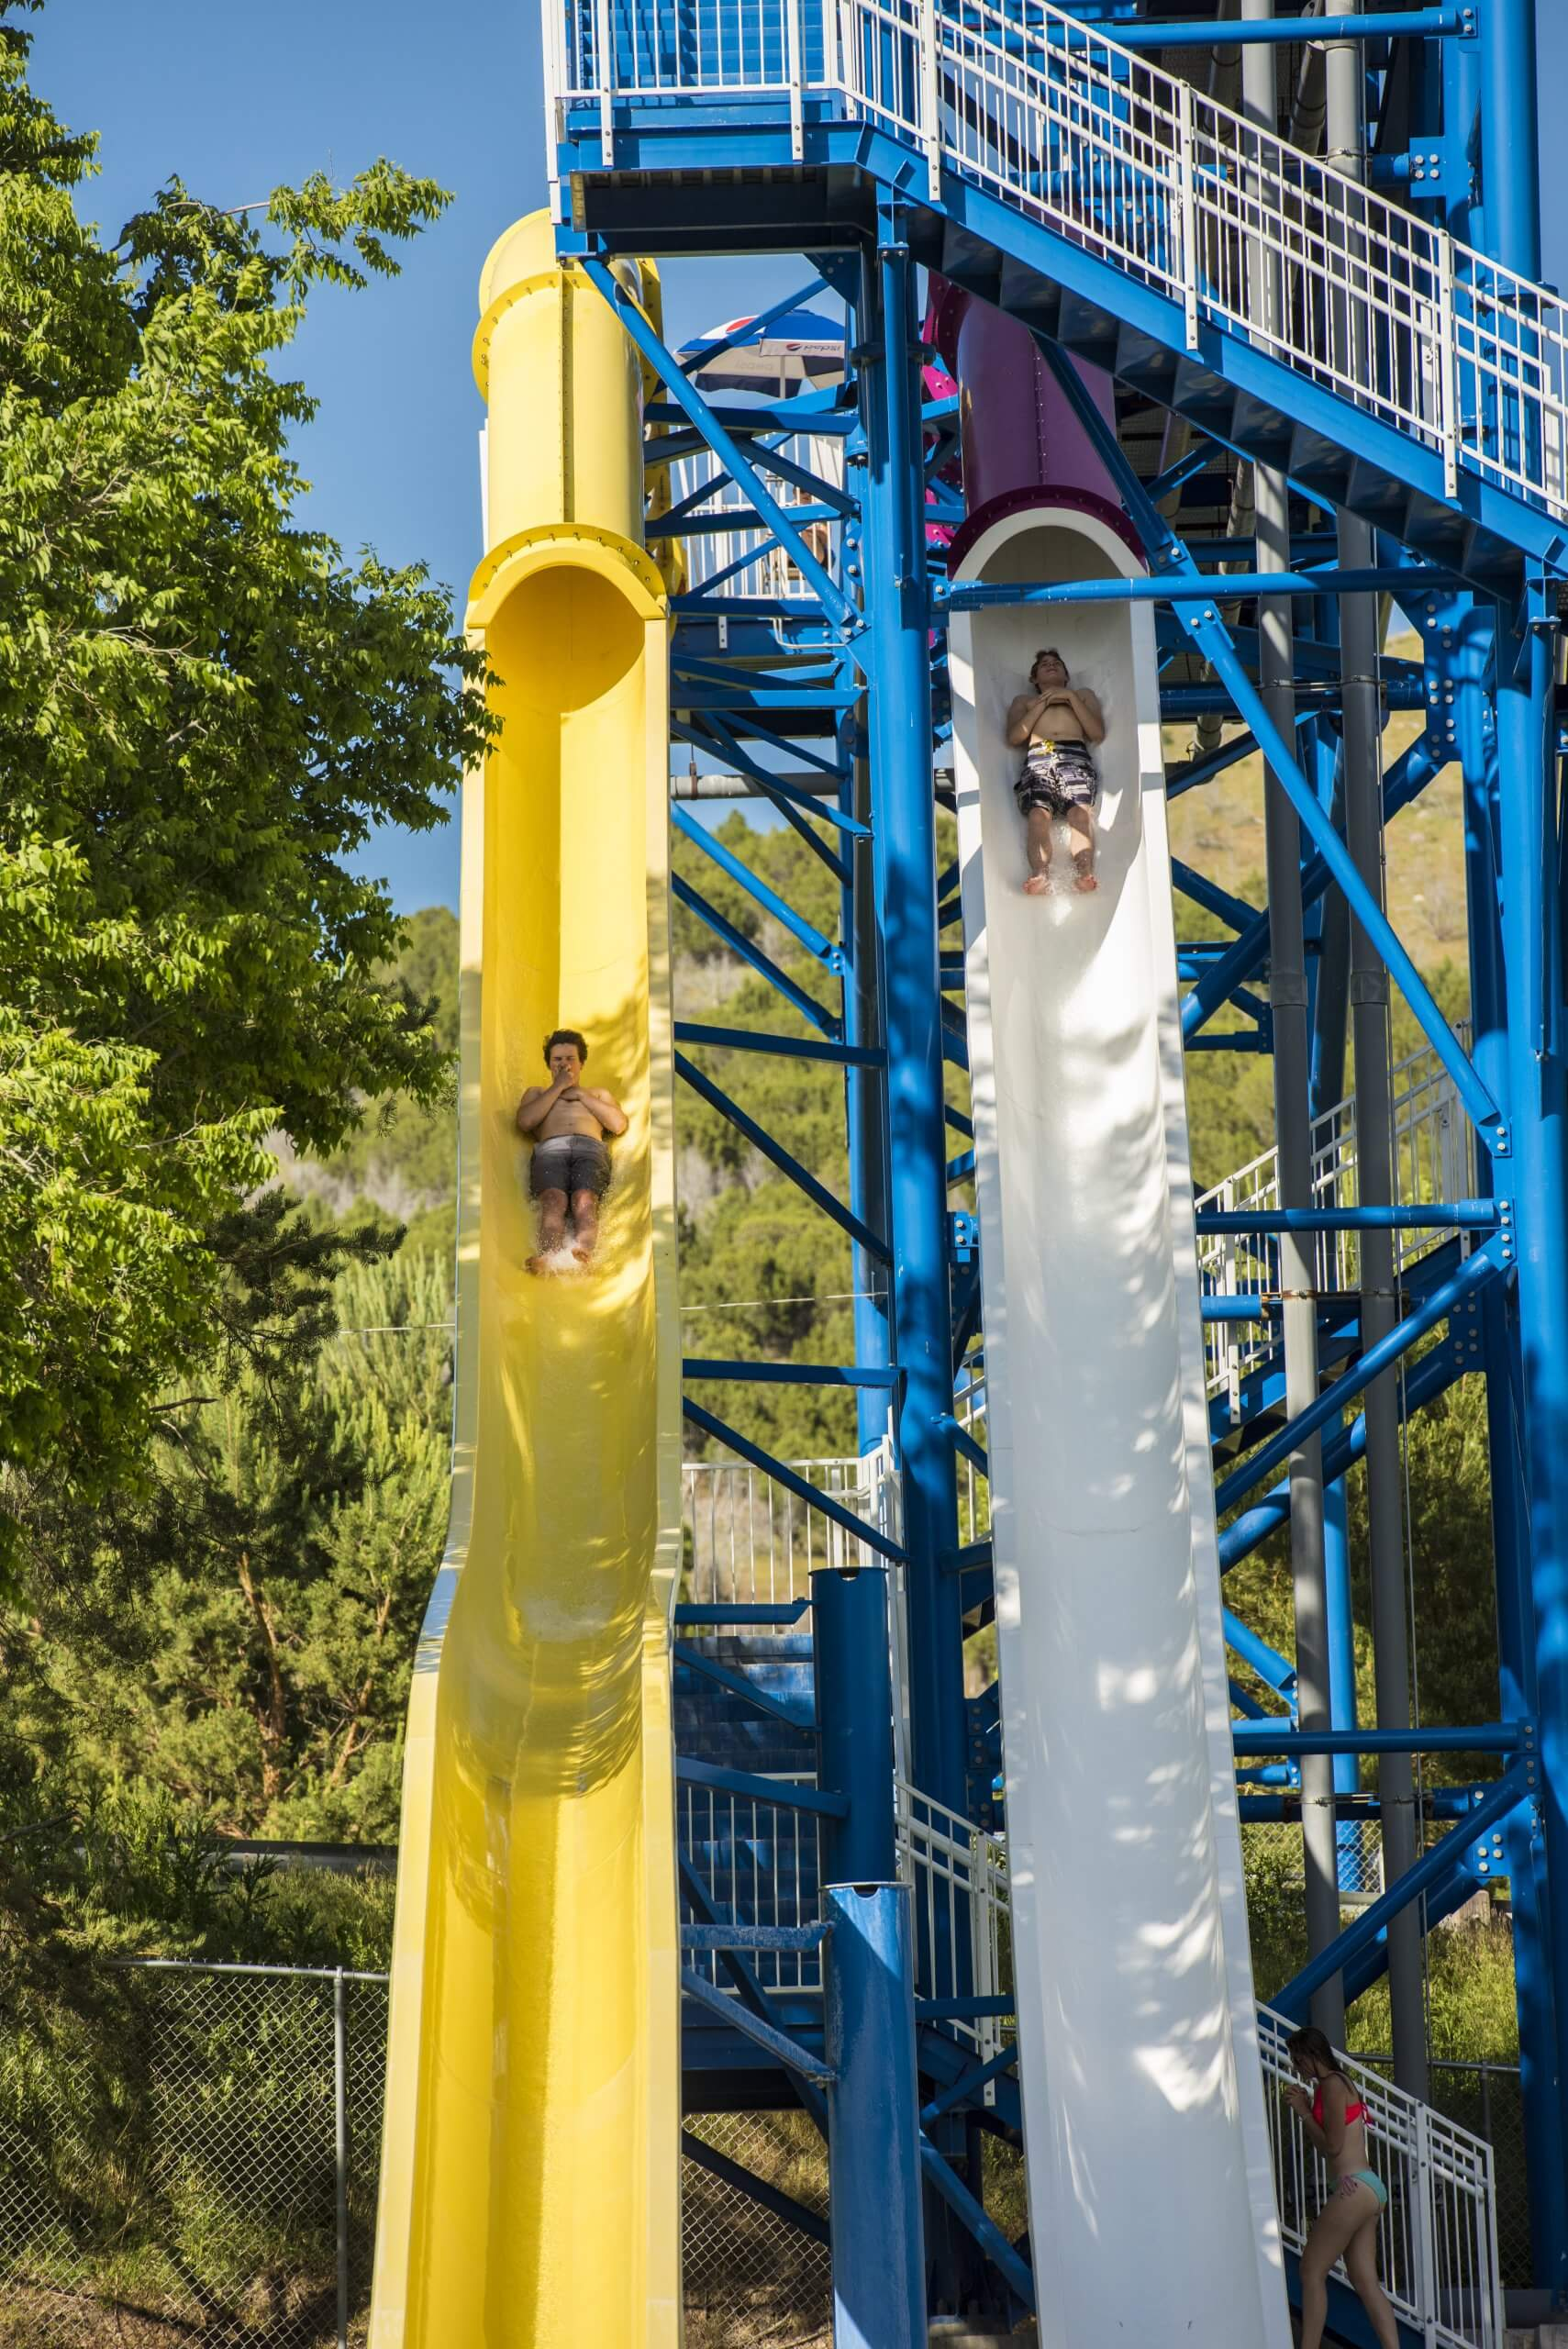 Kids sliding down slides at Lava Hot Springs Olympic Swimming Pool & Waterpark.